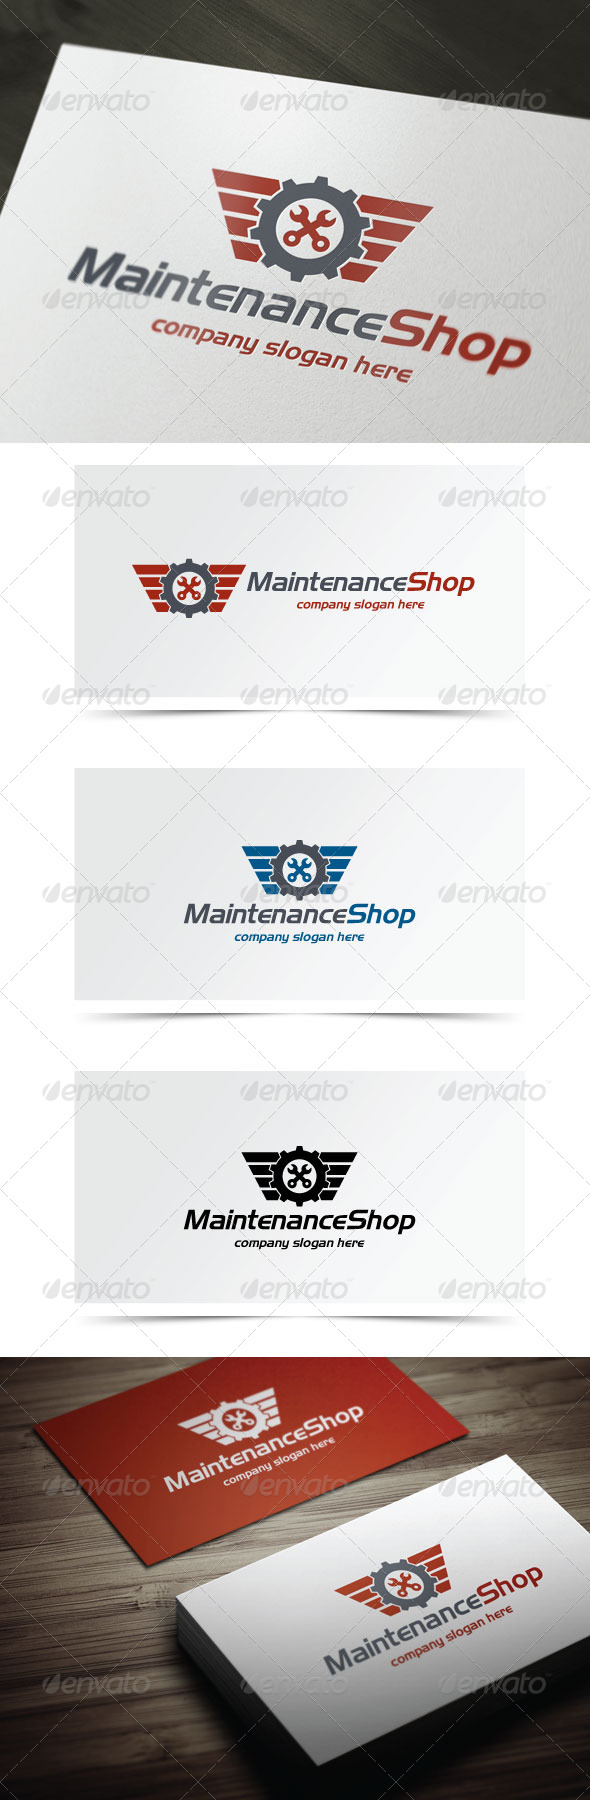 GraphicRiver Maintenance Shop 5741836